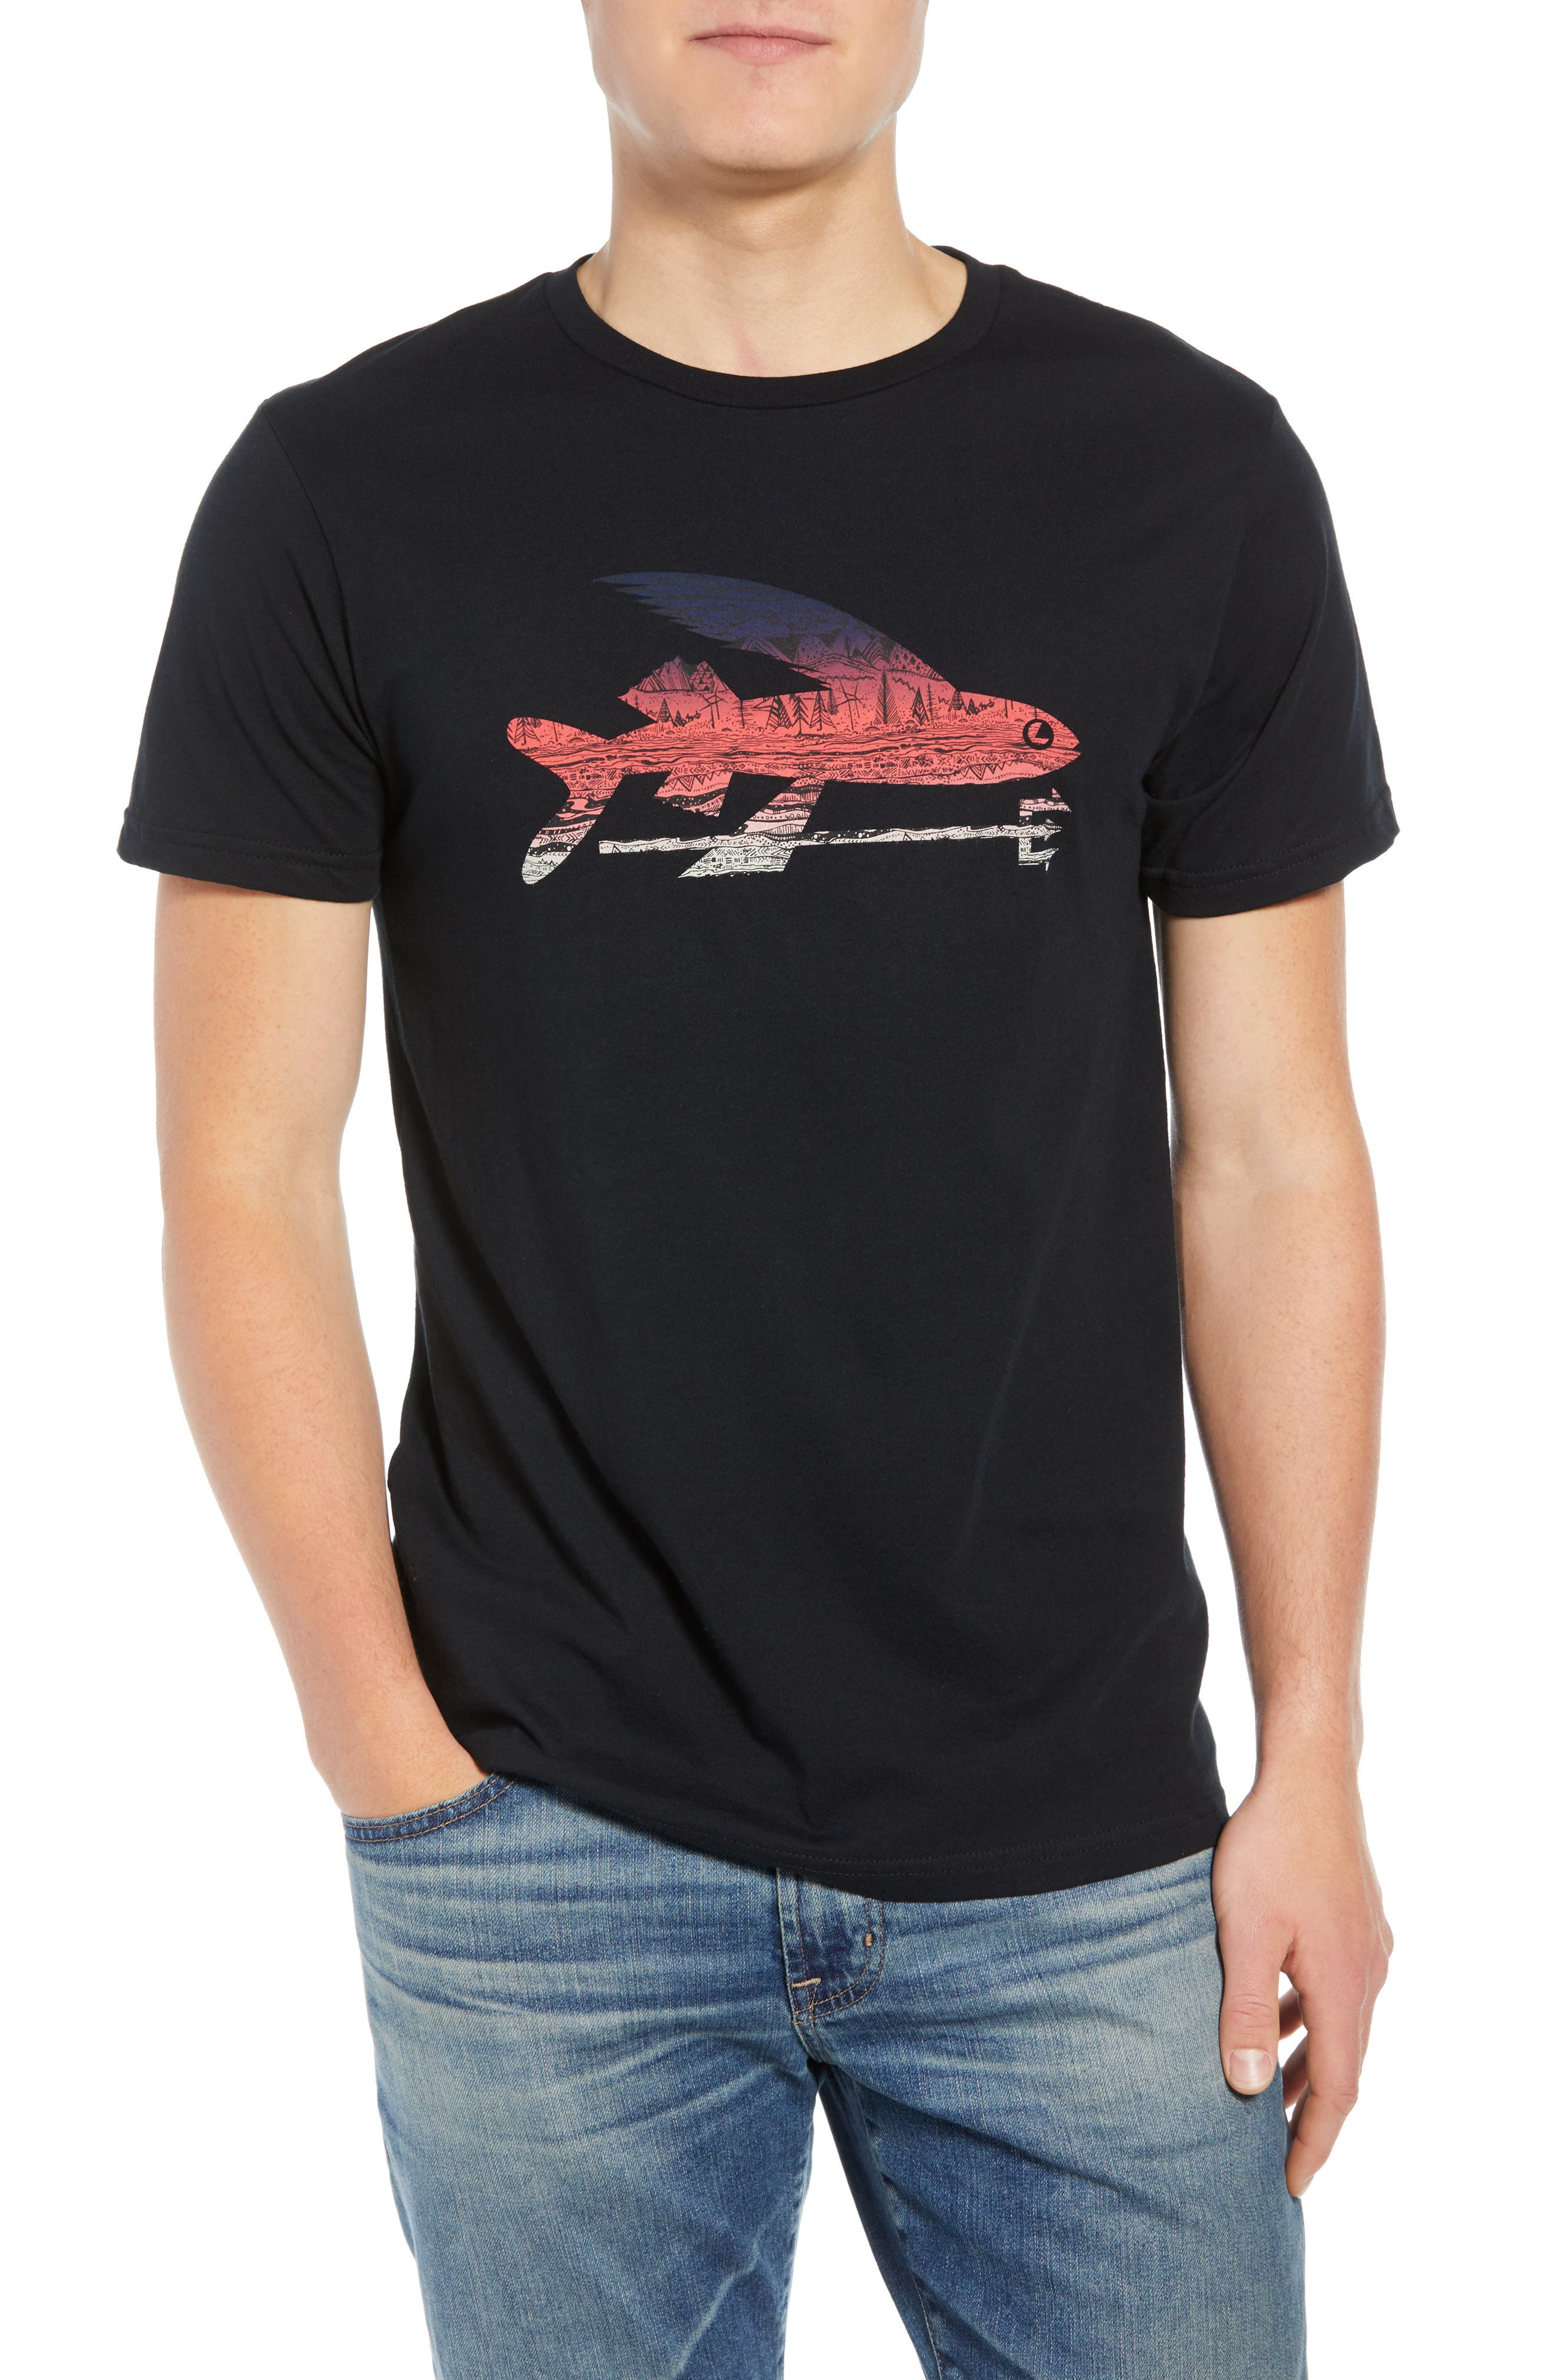 Flying Fish Organic Cotton T-Shirt,                         Main,                         color, BLACK/ ALBANIAN LANDSCAPE